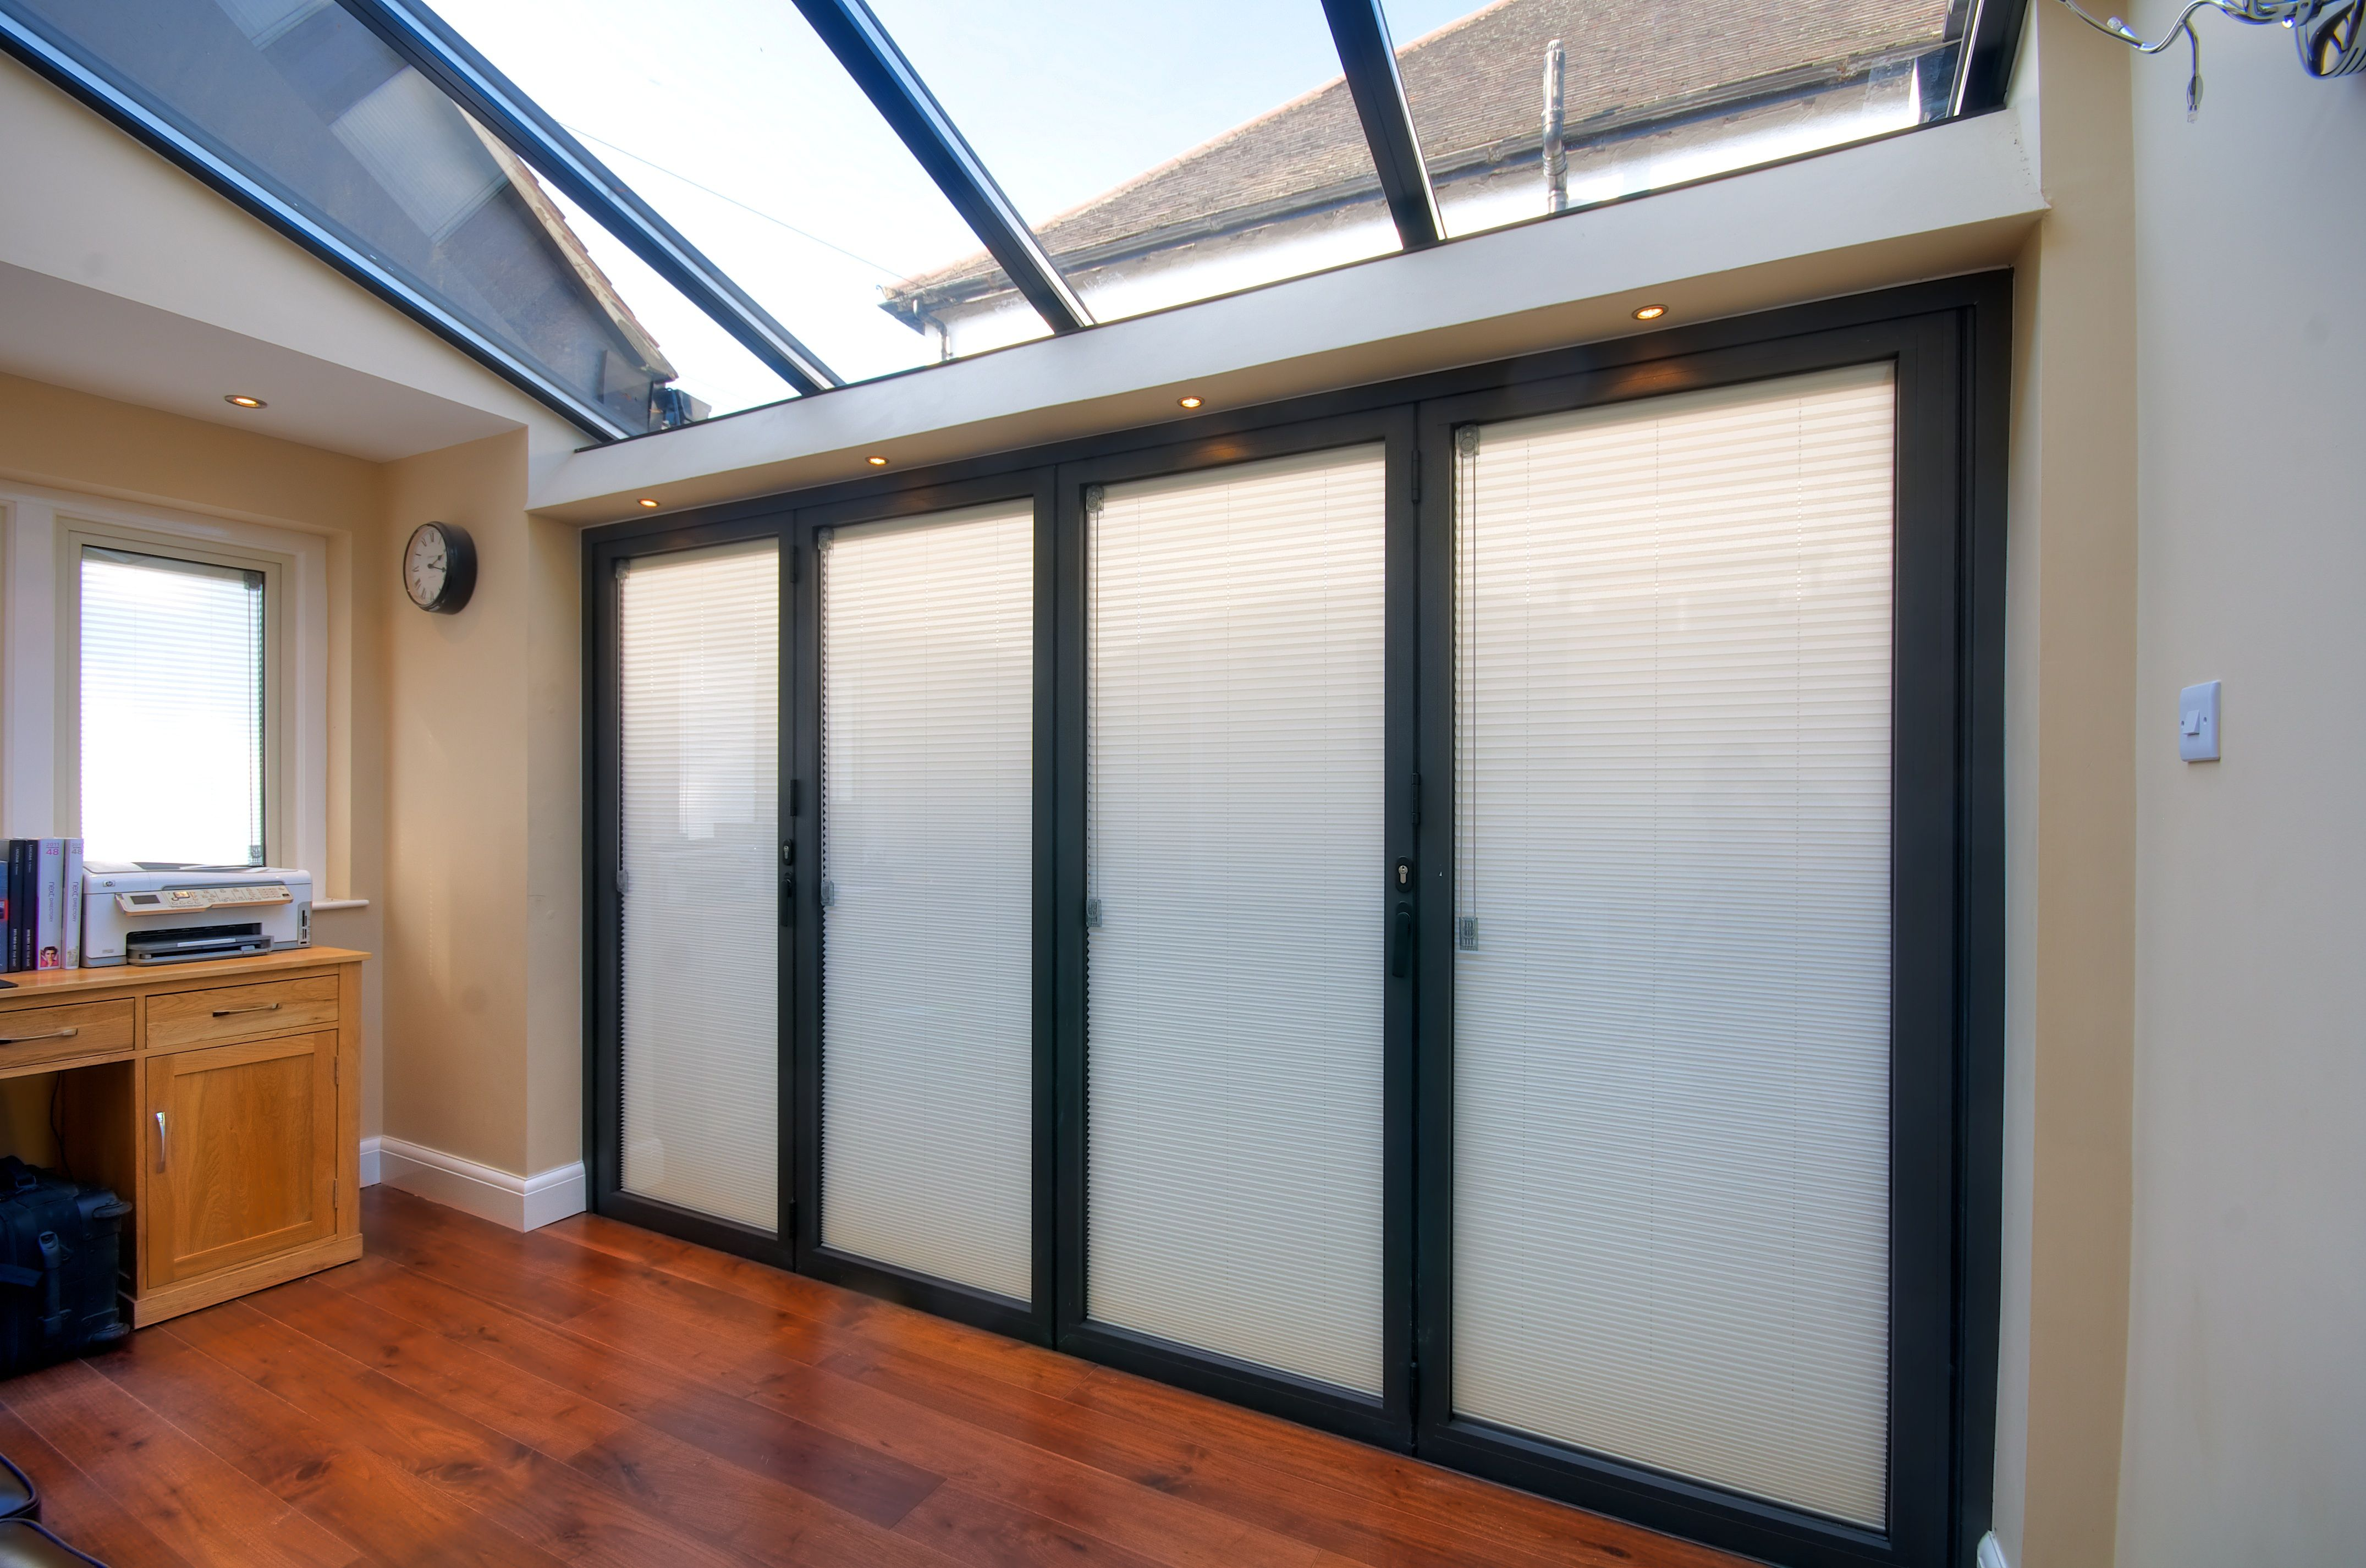 blinds glass sliding roller doors with floor to london interior sunscreen between french pin ceiling windows